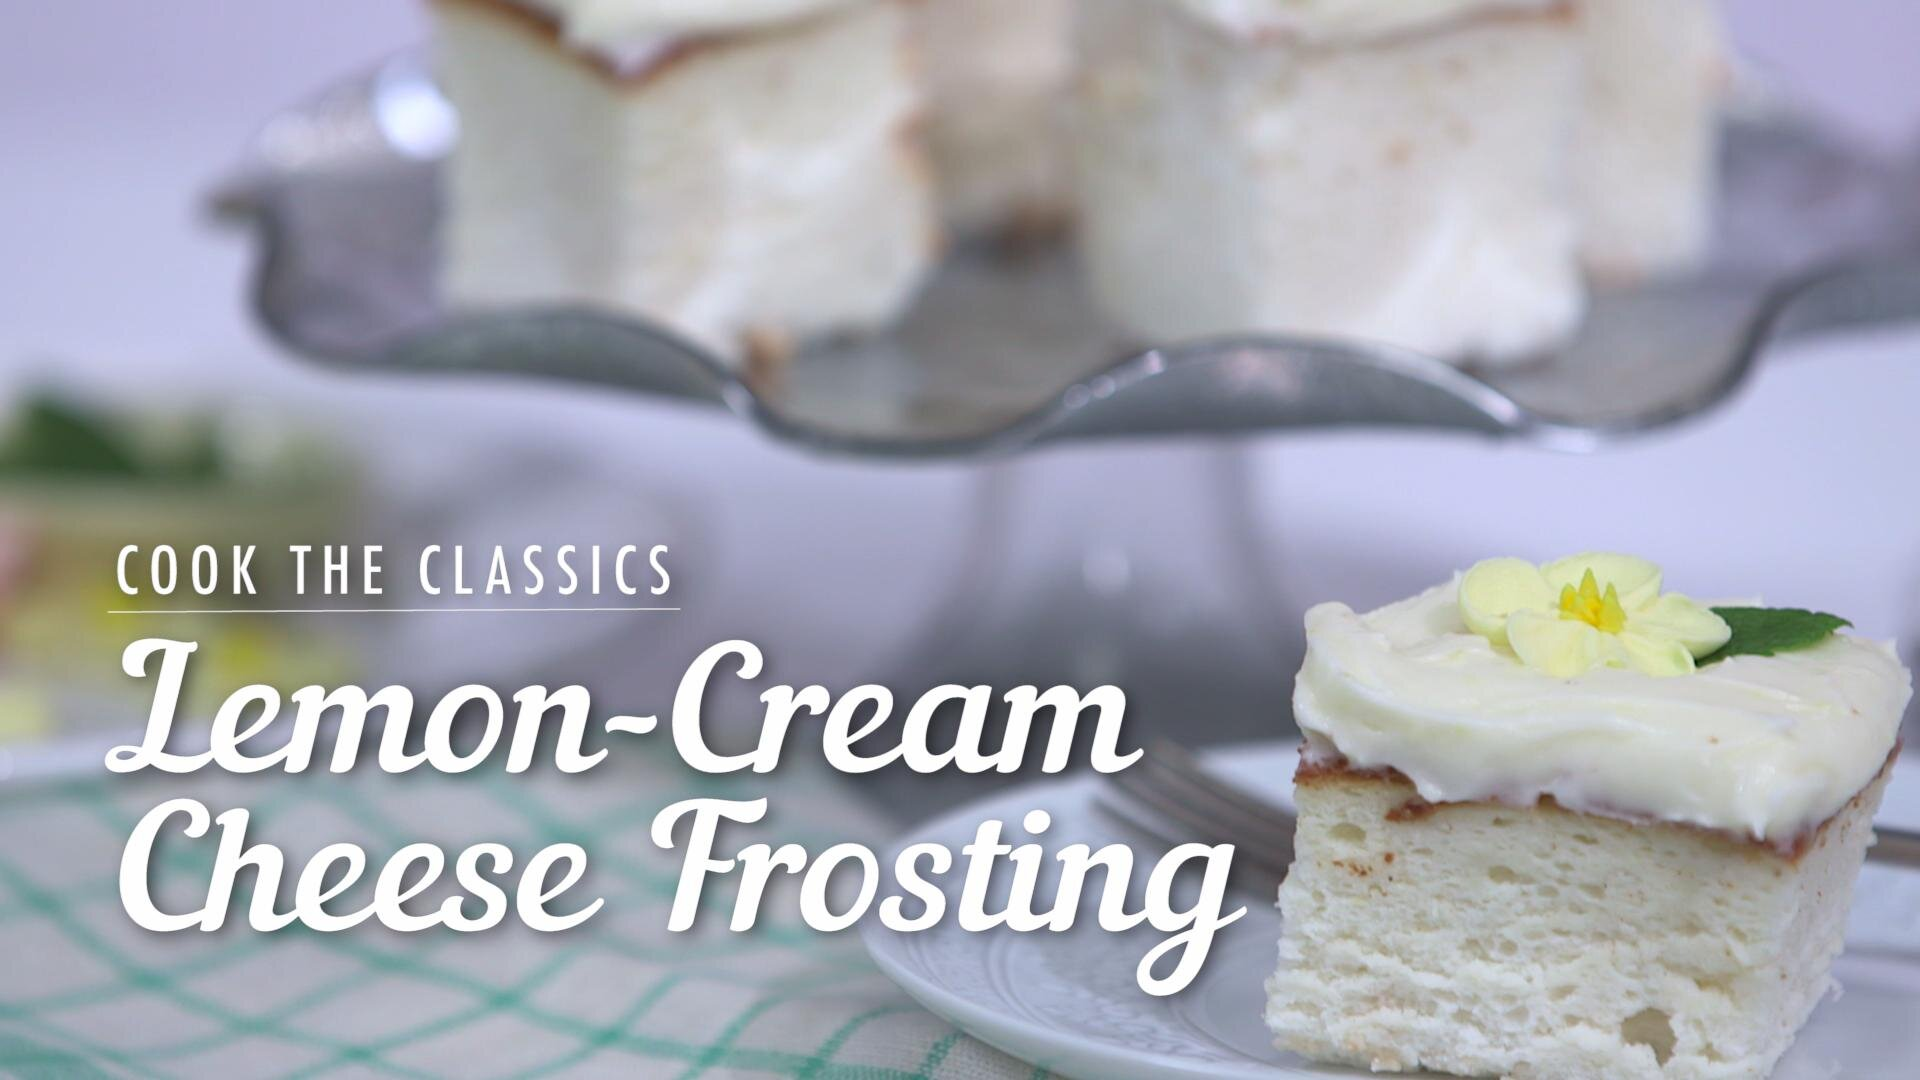 How to Make Lemon-Cream Cheese Frosting